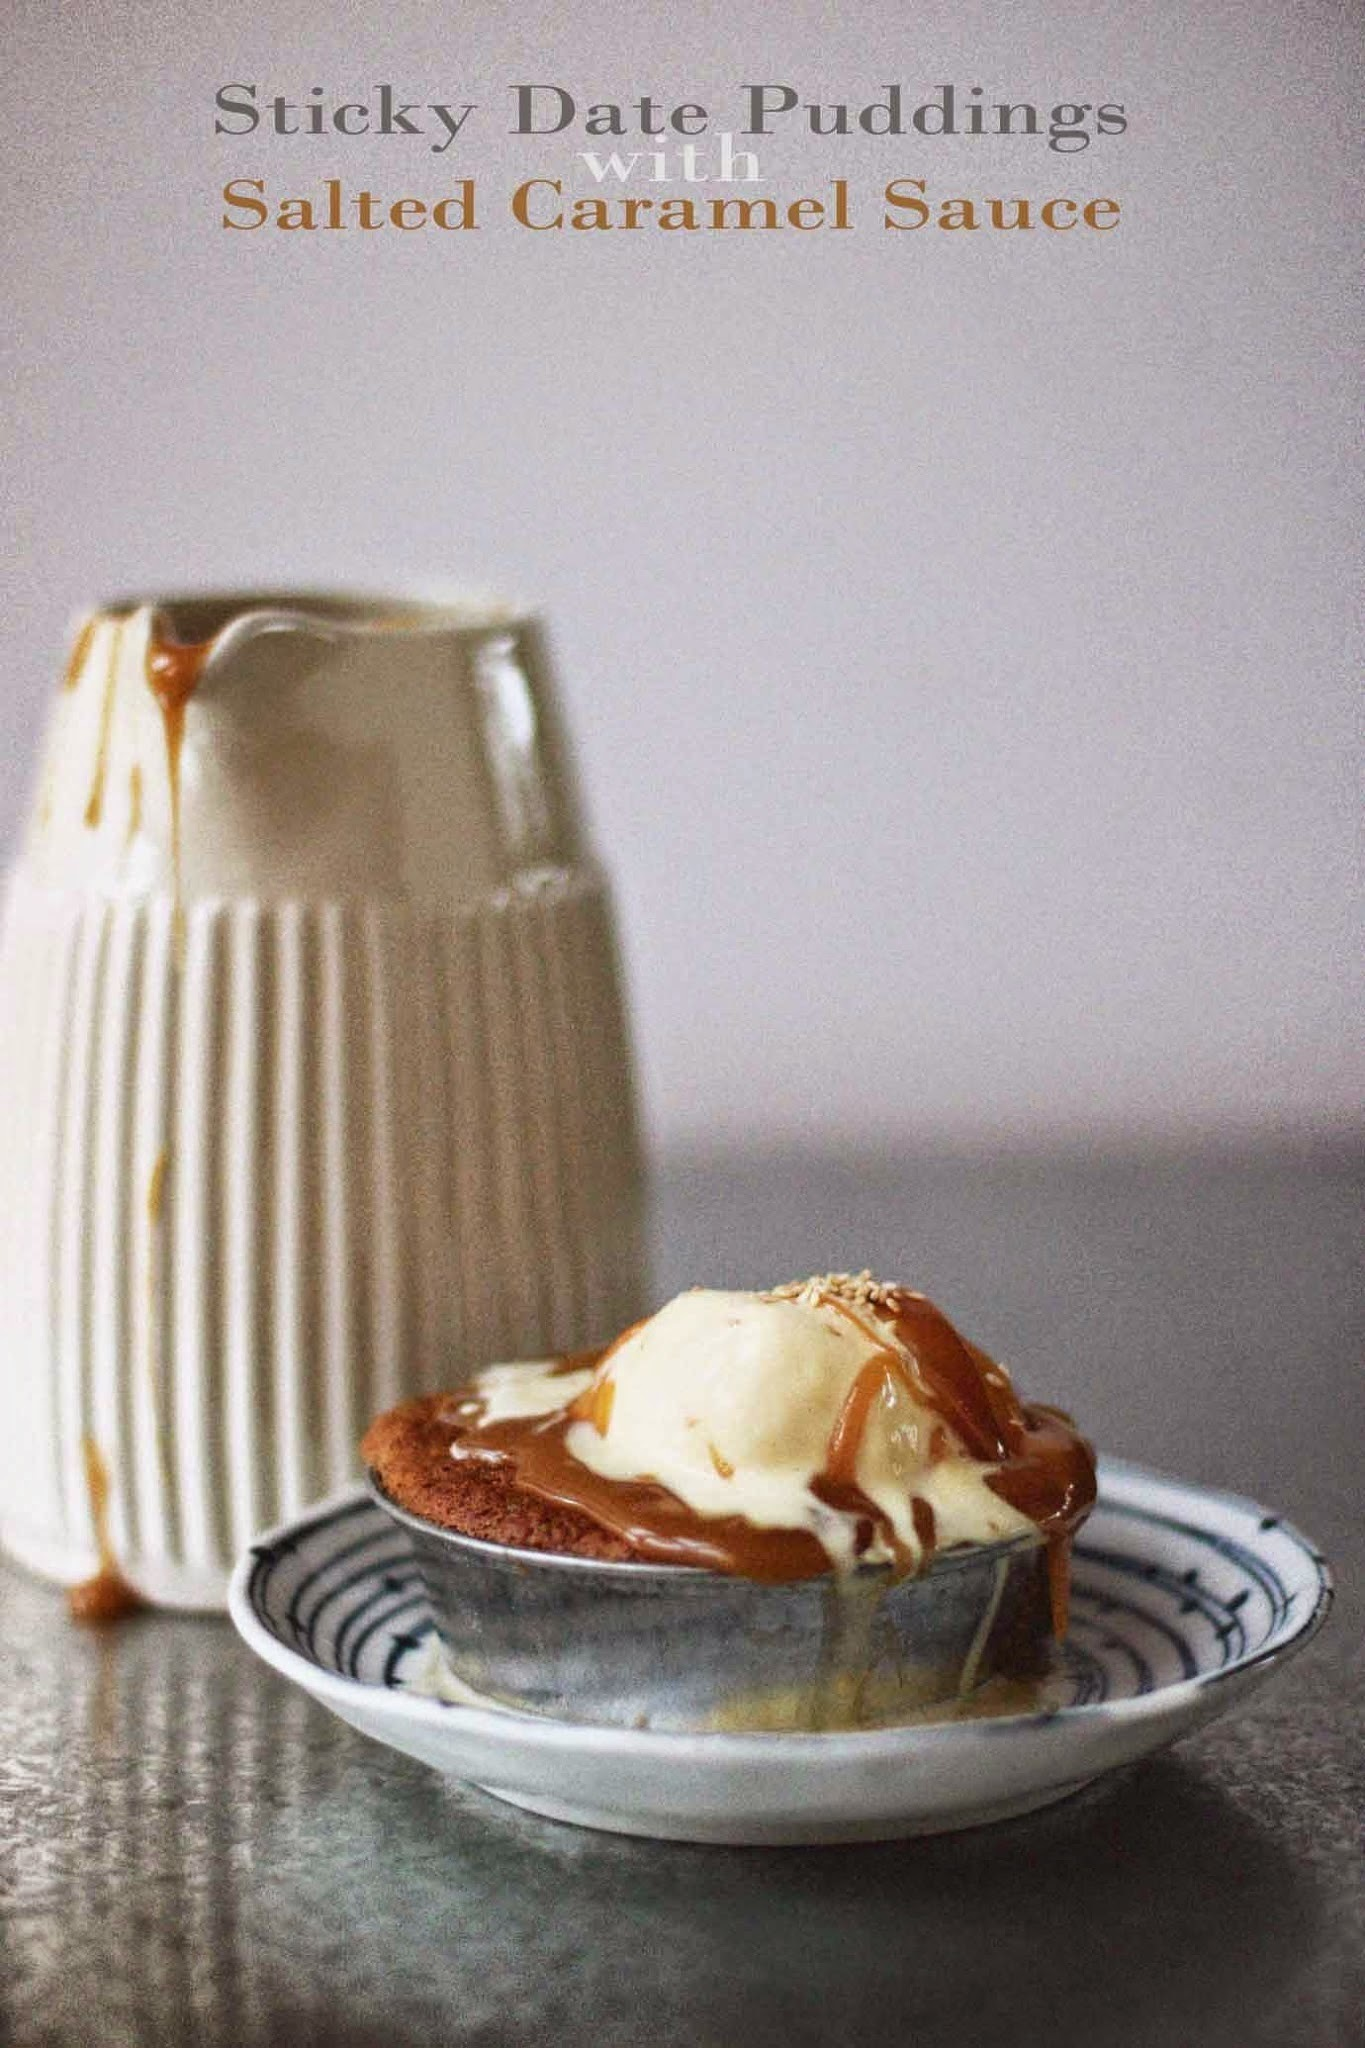 Sticky Date Puddings with Salted Caramel Sauce